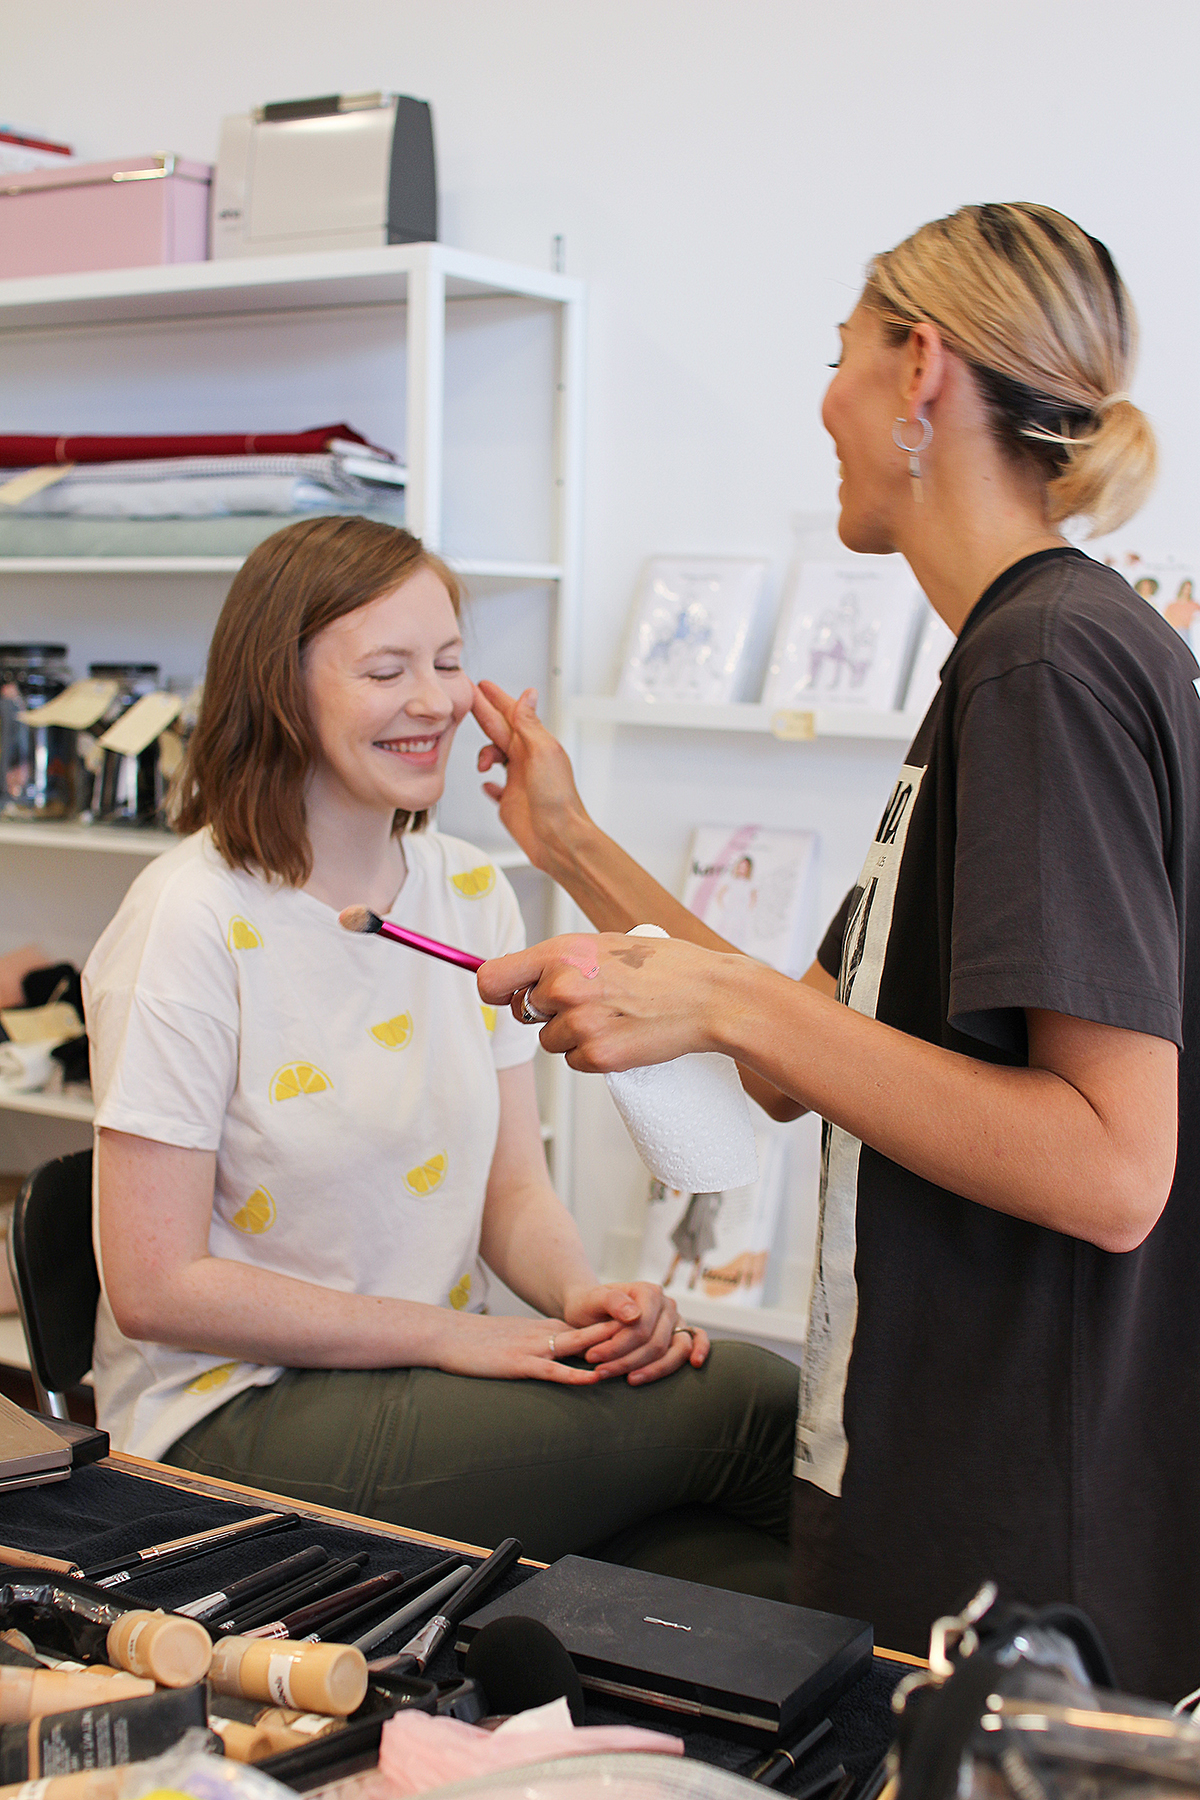 Sewing Community Project: Behind The Scenes - Julia Getting Her Make-Up Done